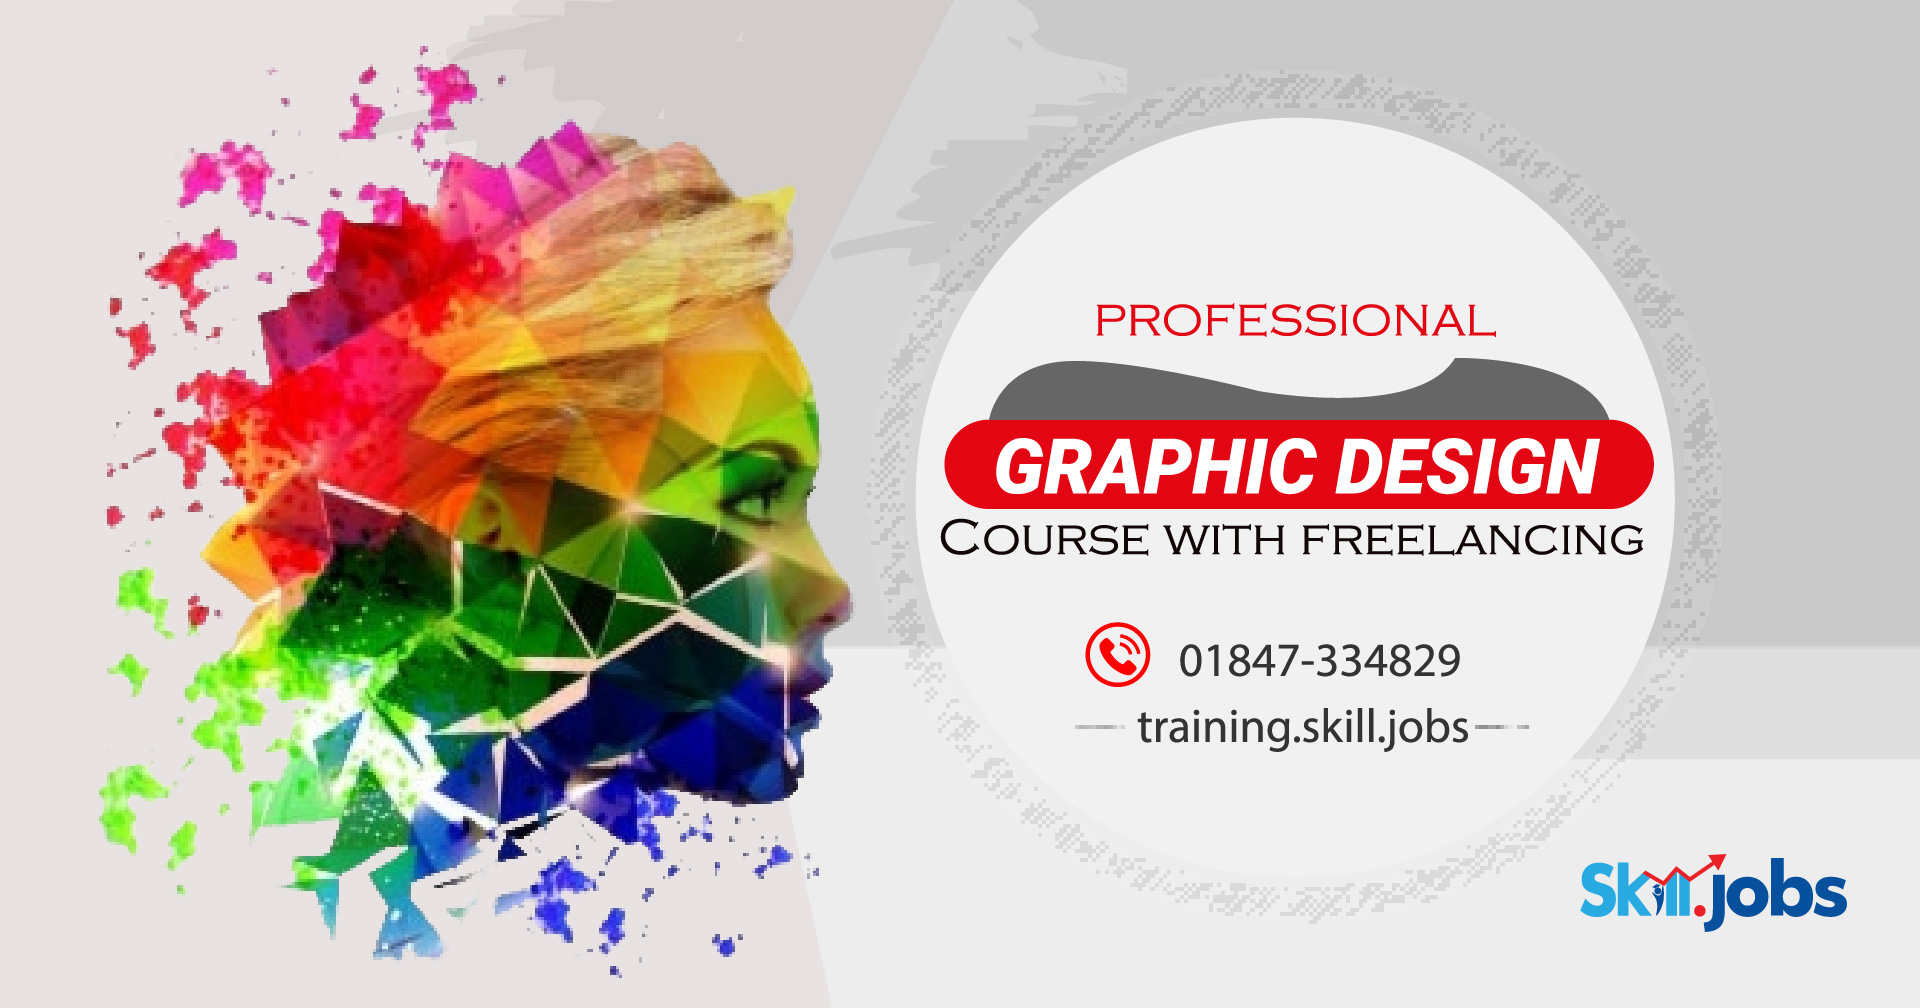 Professional Graphic Design with freelancing